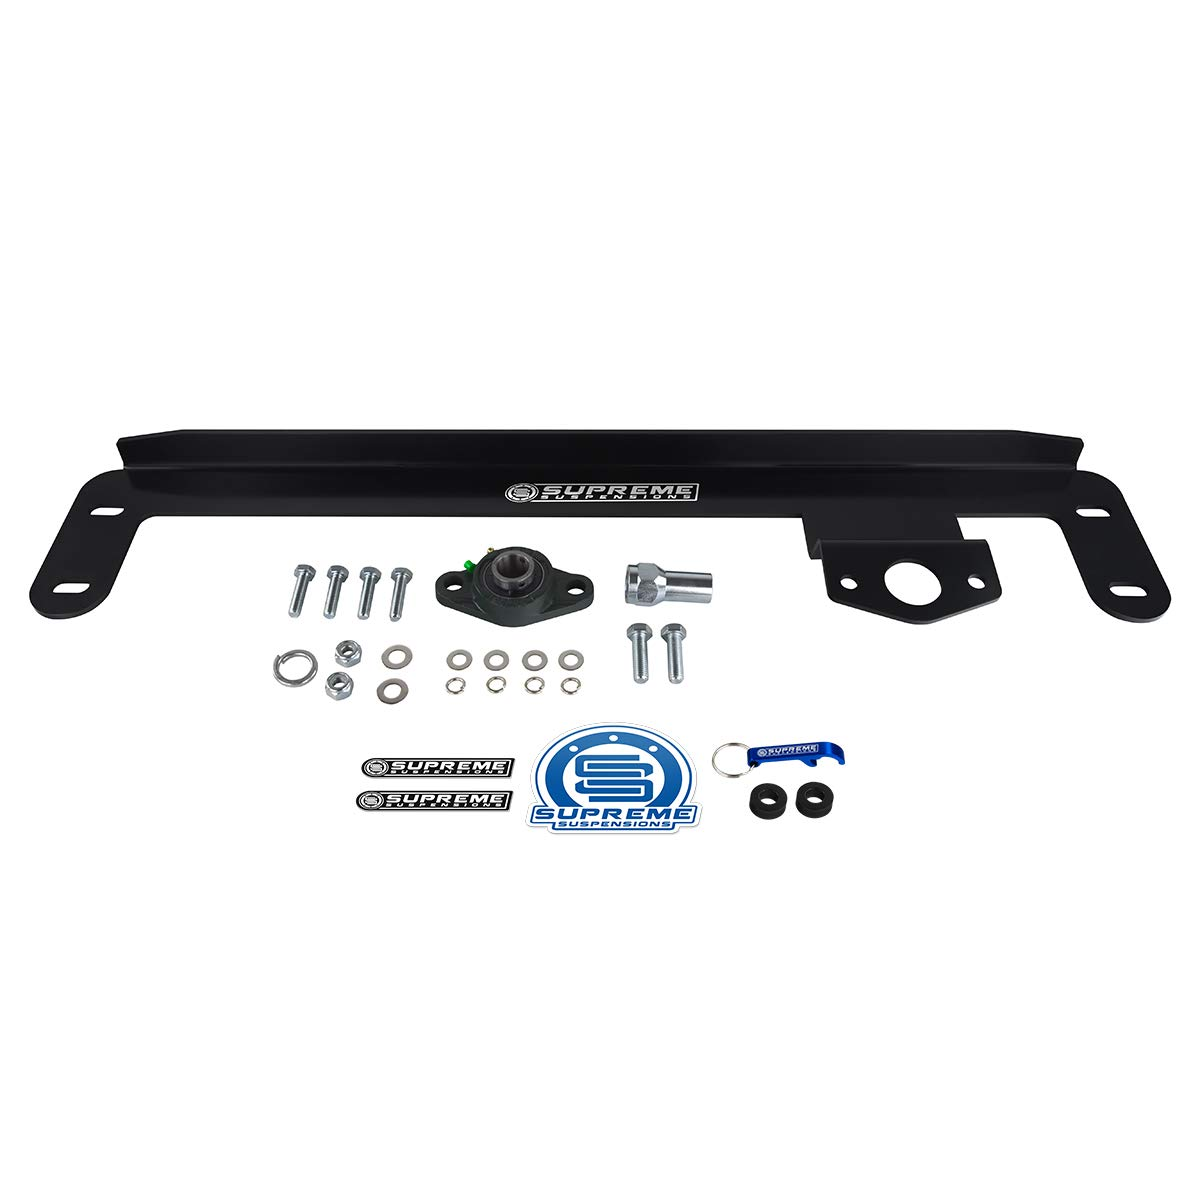 Supreme Suspensions Dodge Ram 2500 3500 Death Wobble Fix Steering Gear Box Stabilizer High Strength Steel Kit 4WD Gear Box Stabilizer for 2009